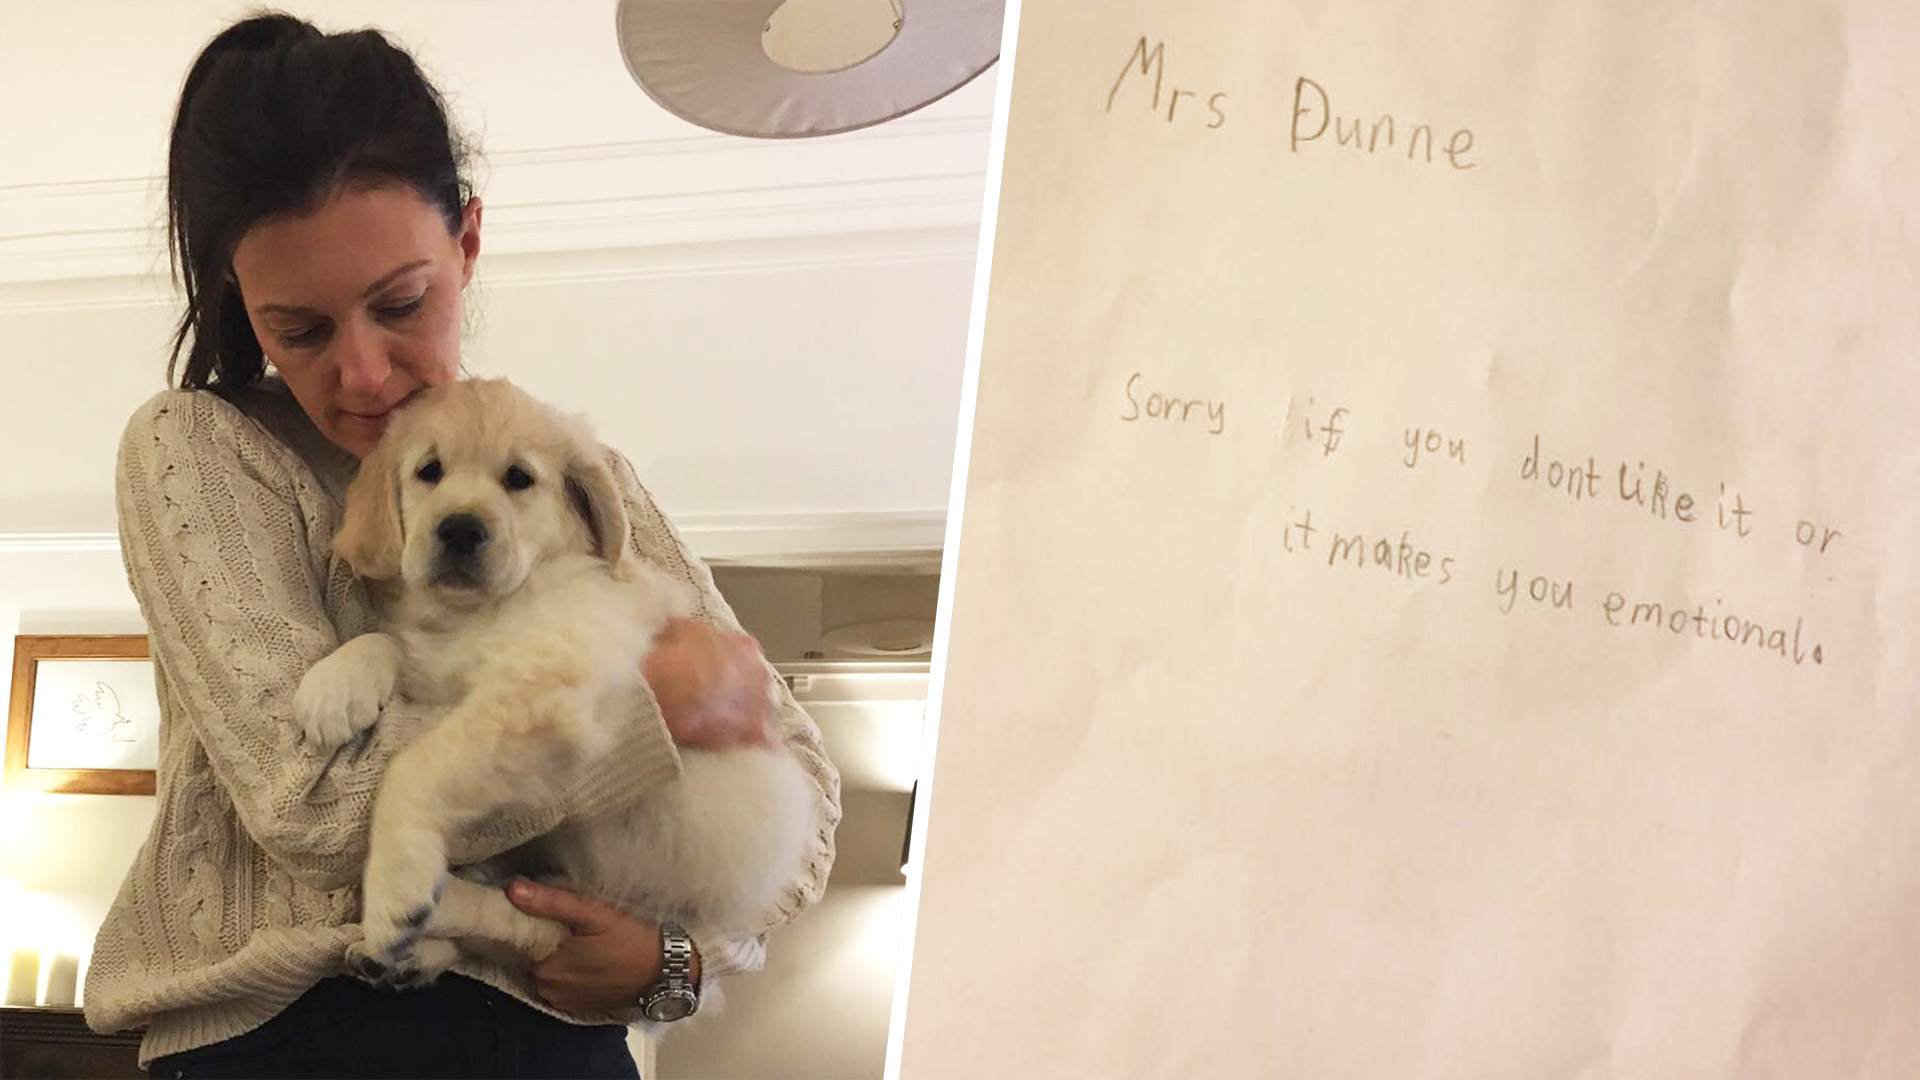 Scottish Student S Note To Teacher Mourning Loss Of Dog